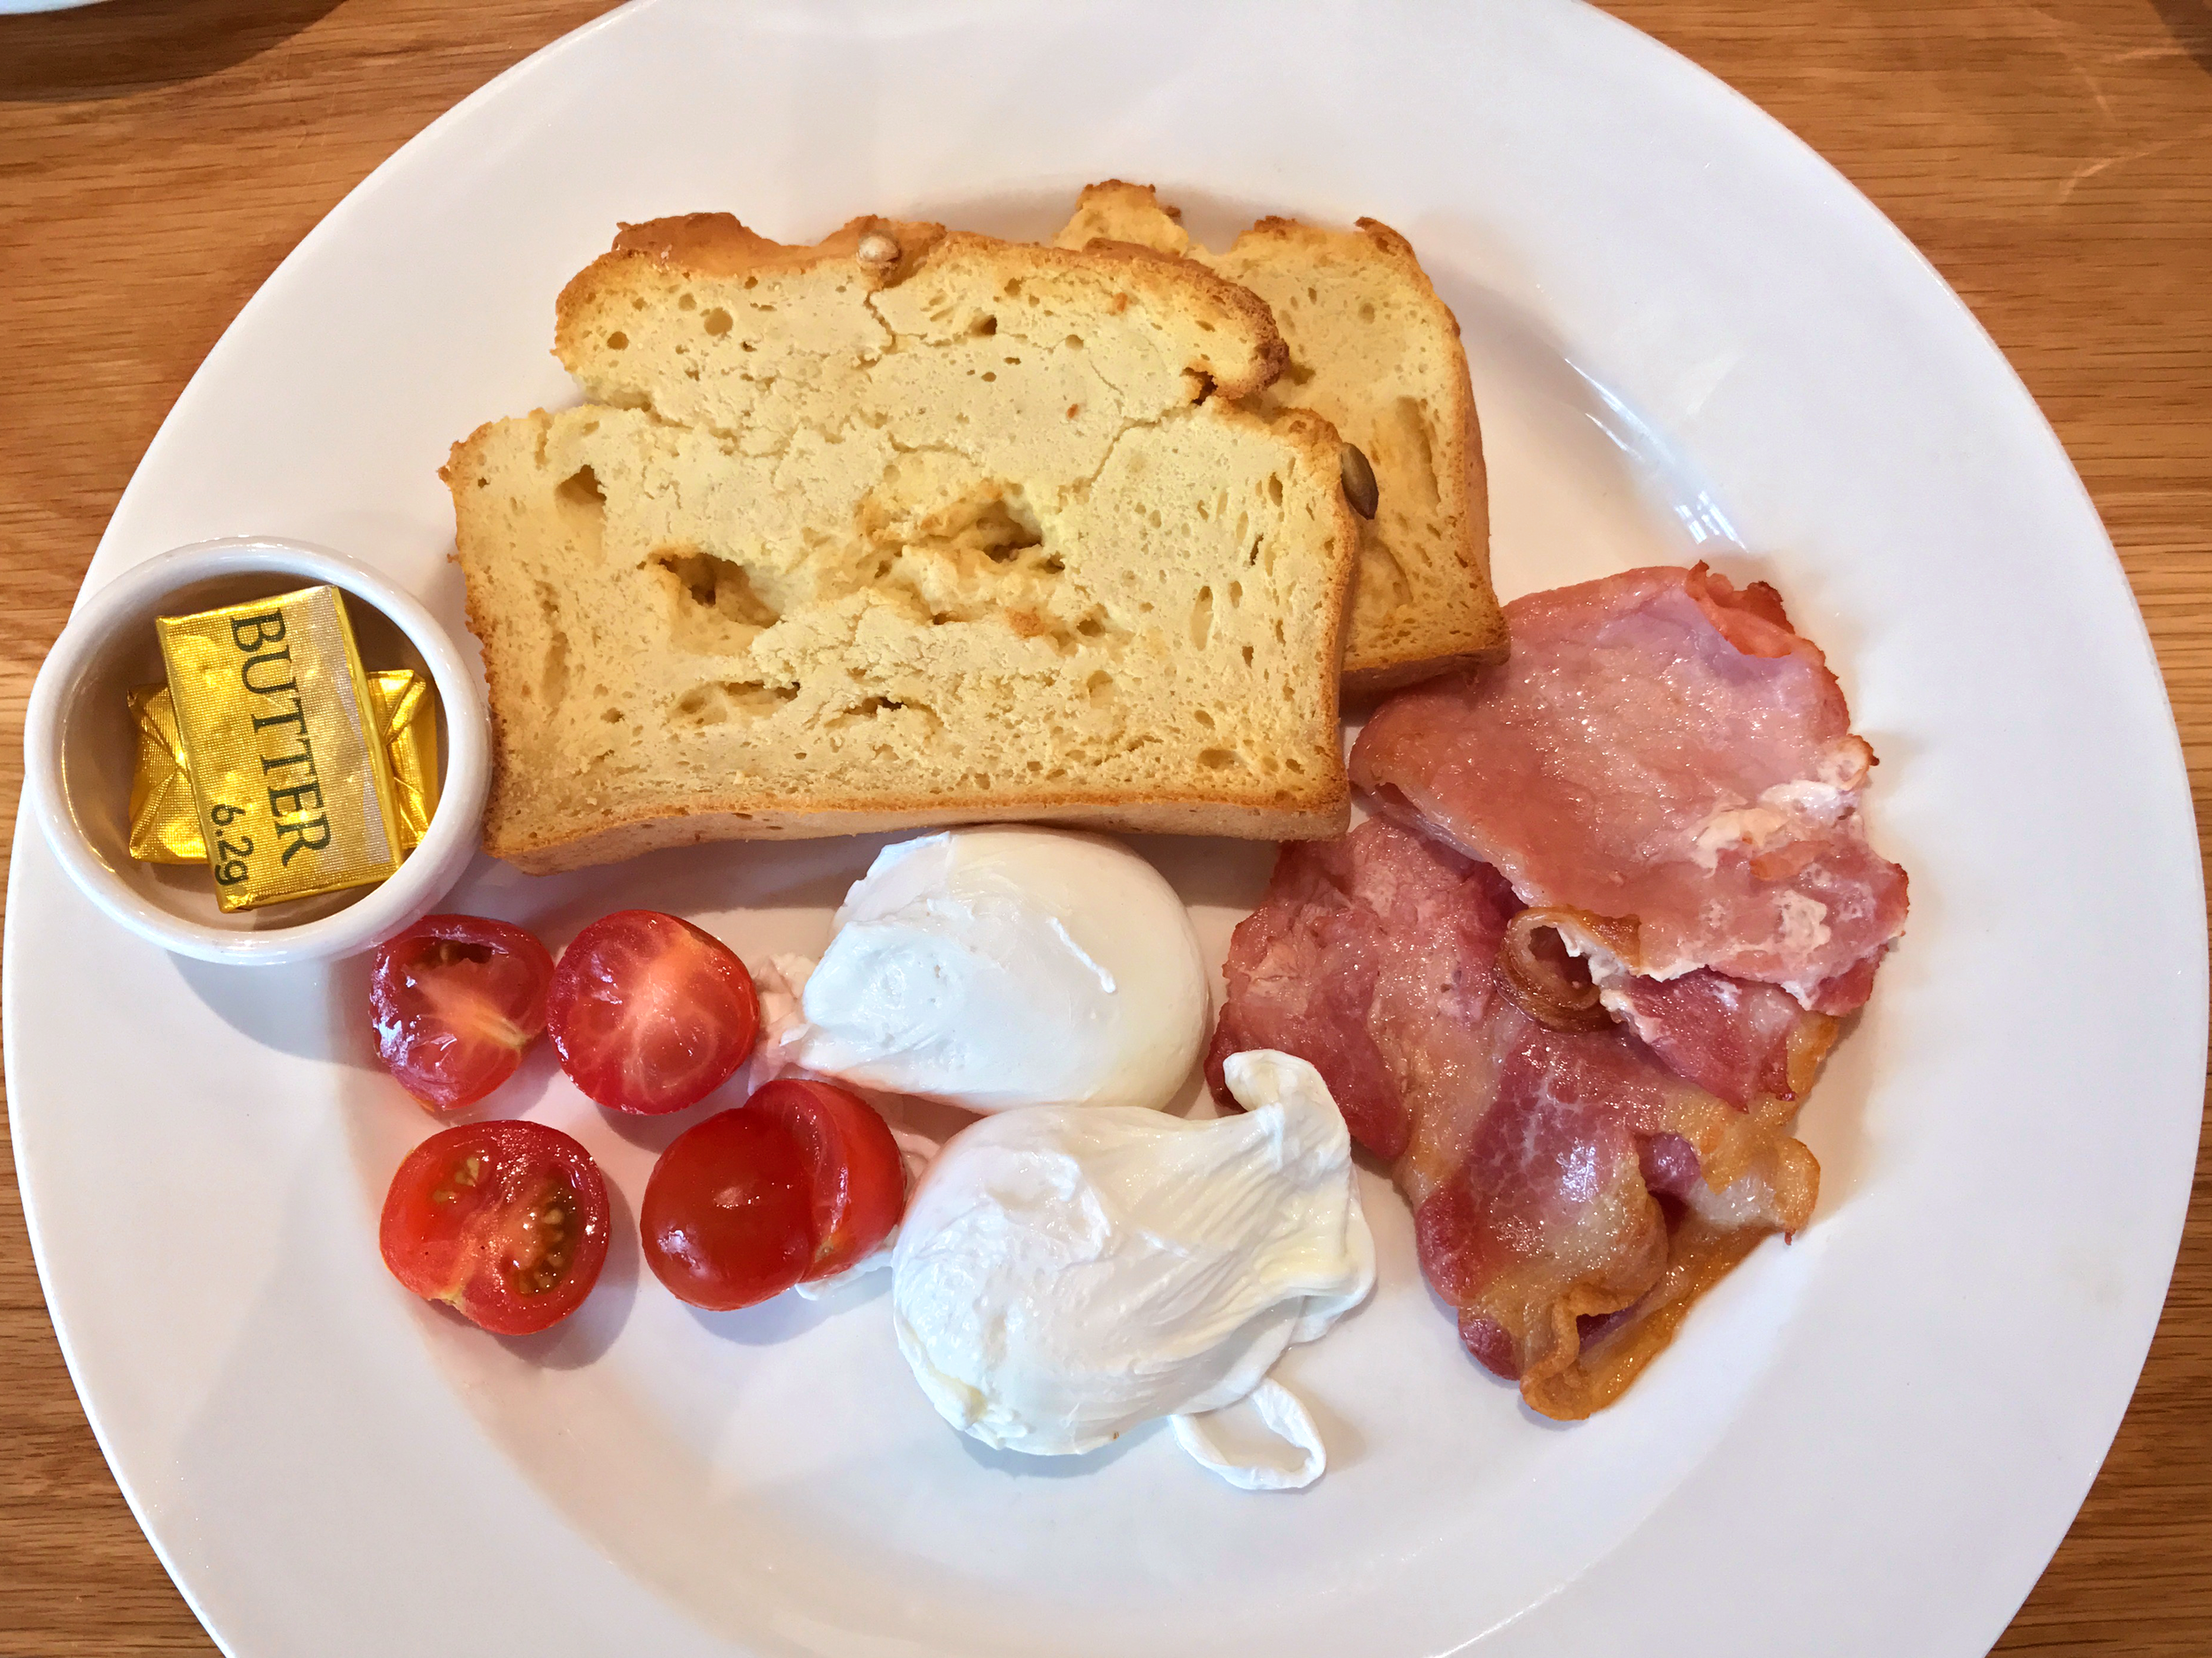 Poached eggs, bacon, and homemade gluten-free bread from   Loudons Cafe & Bakery